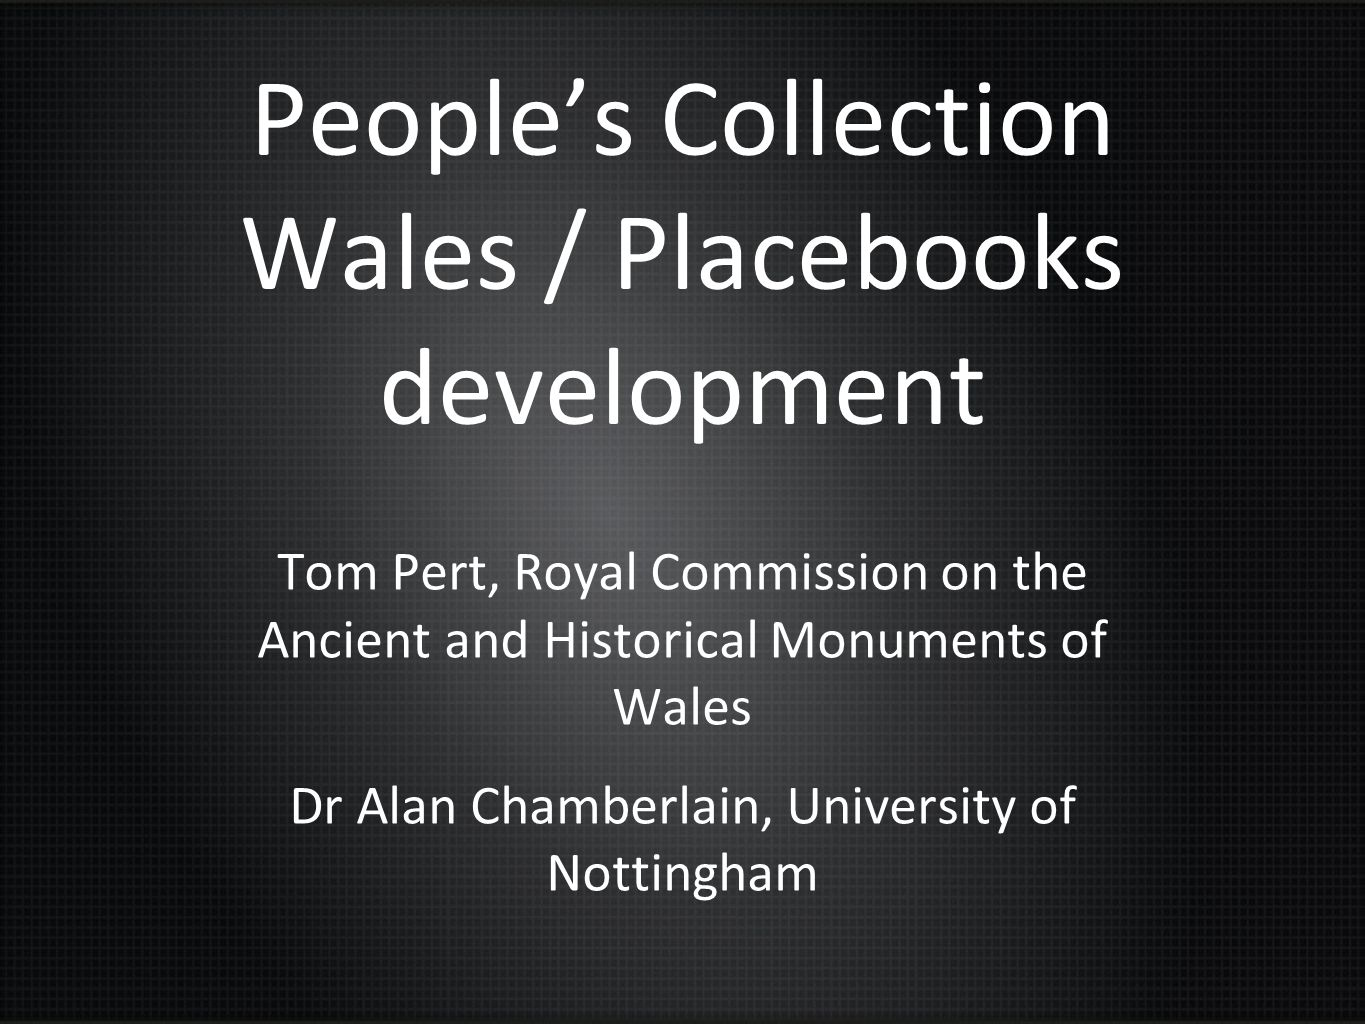 People's Collection Wales / Placebooks development